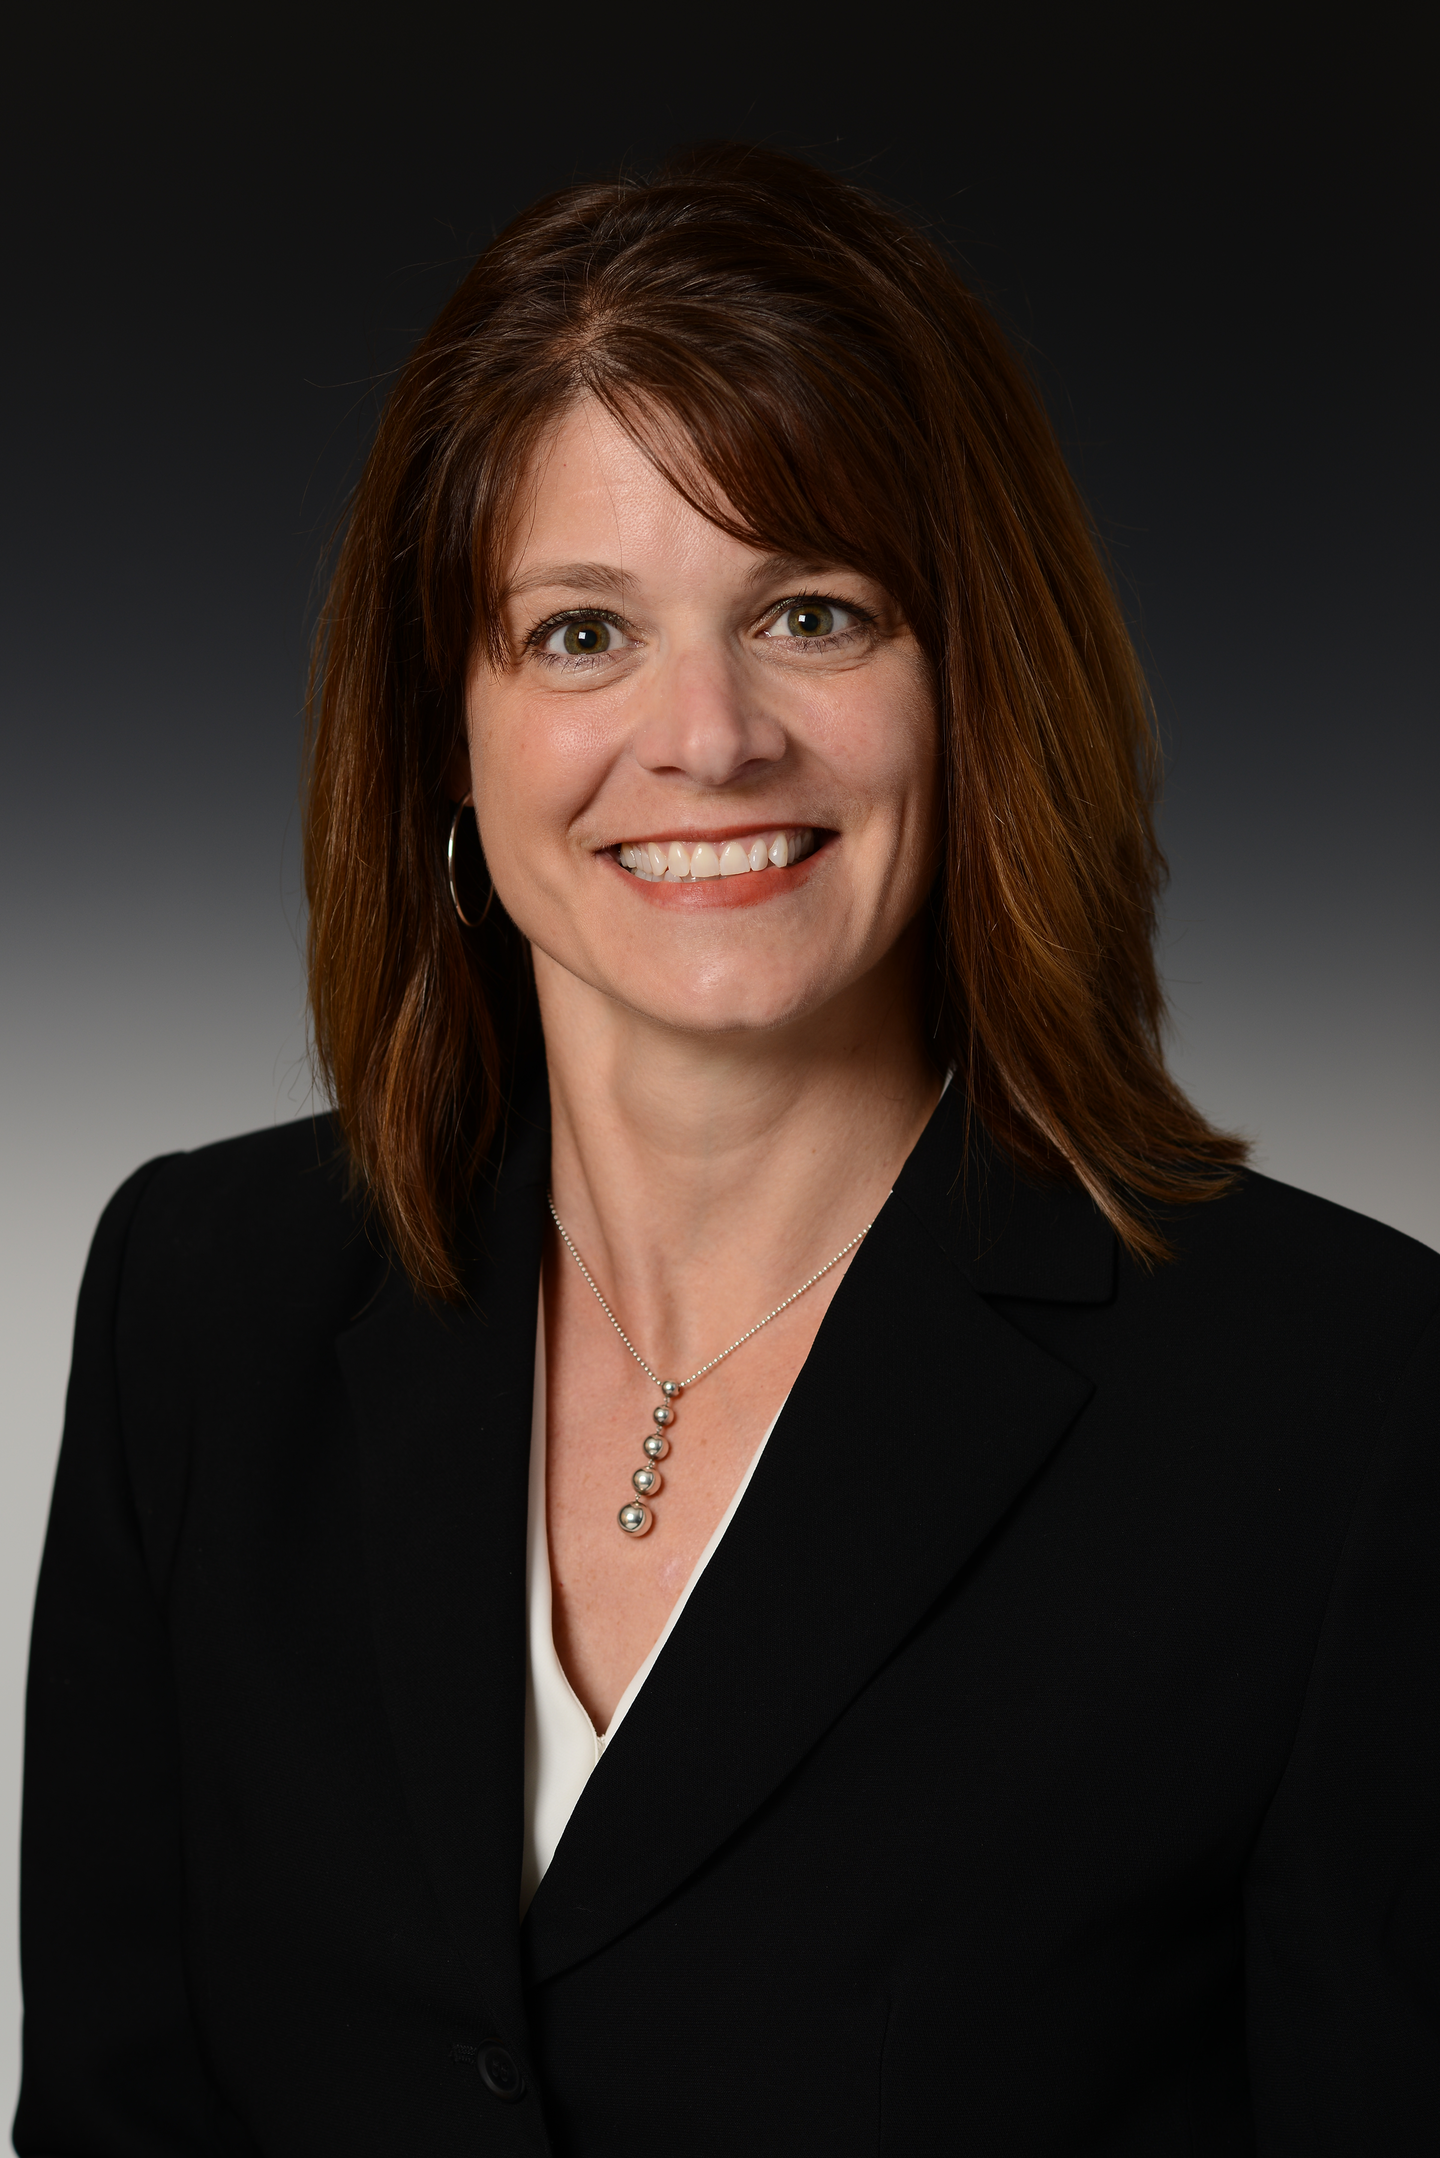 Denise Mager, VP, Operations Life Sciences and Healthcare, DHL Supply Chain, North America